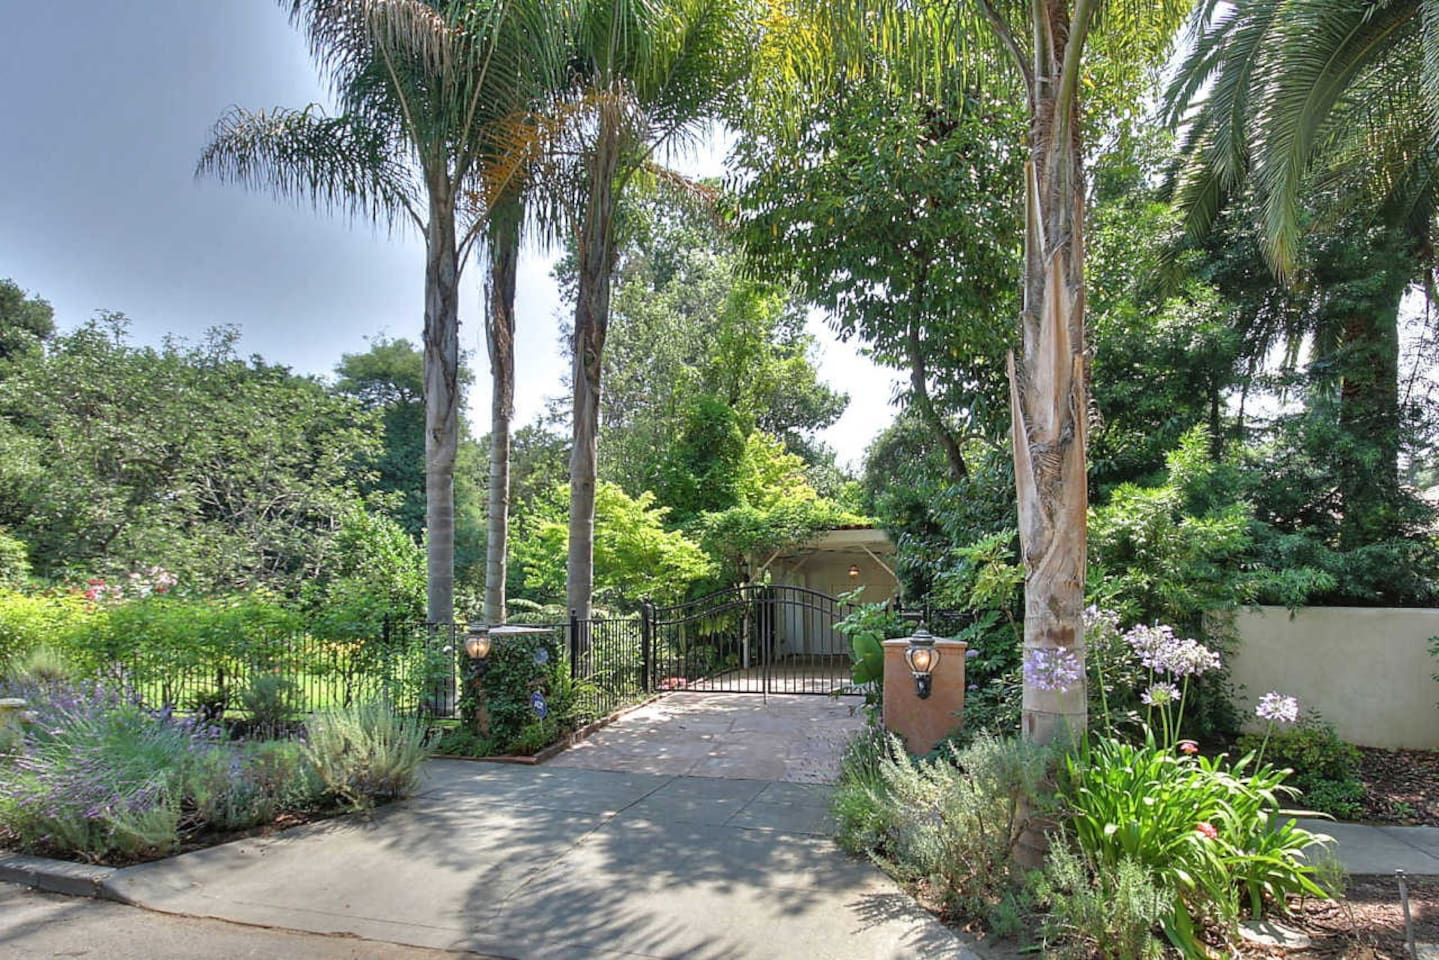 Welcome to our home, a secluded oasis 8 blocks from Downtown Palo Alto!